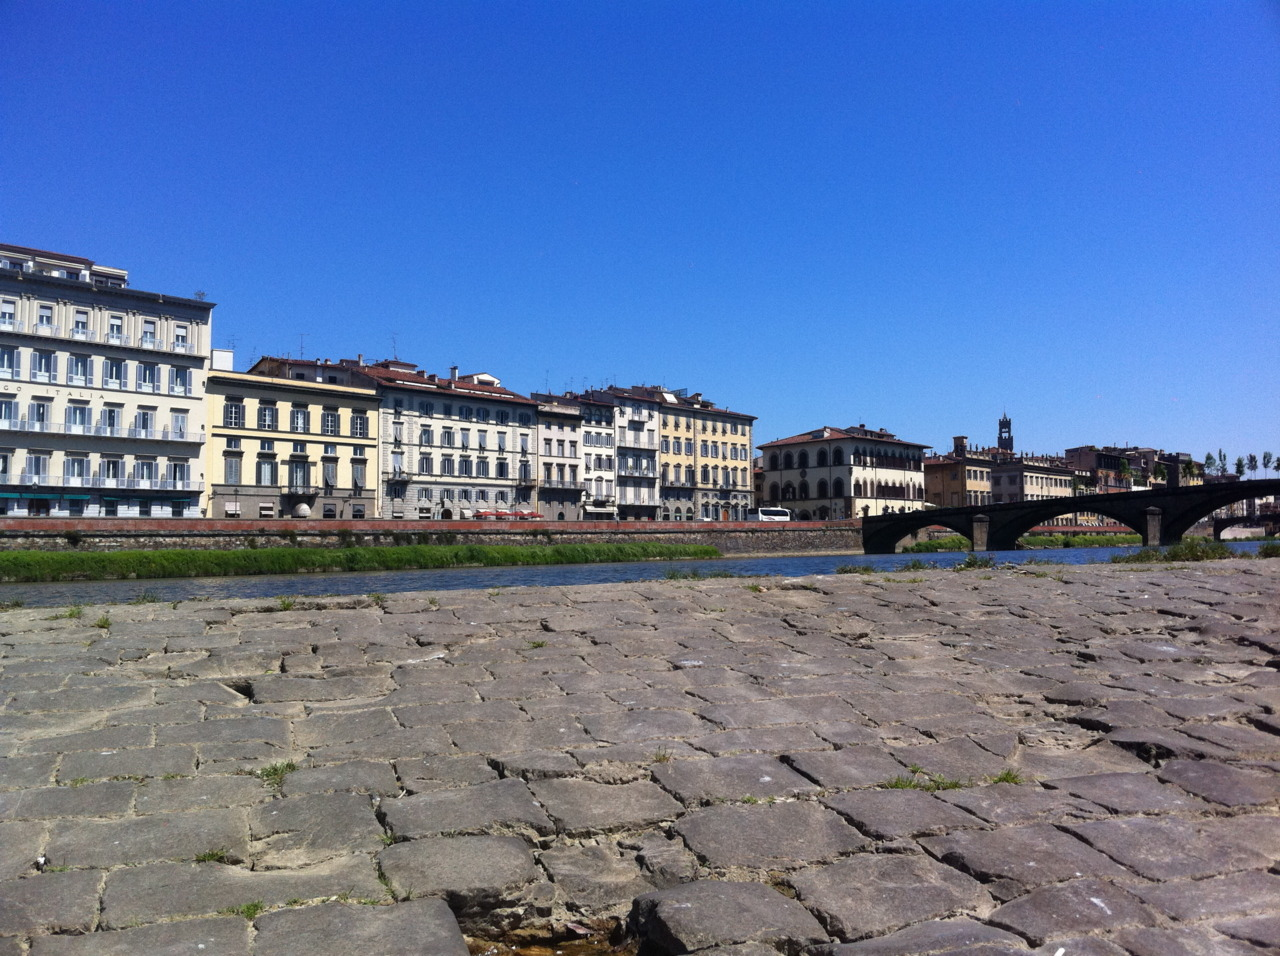 Last week of in Florence!!!!!! Laid out by the Arno today to get my tan on. This is the palest I've been this time of year.  My biggest dilemma at the moment is what do I want more, A Leather Purse, some nice jewelry, or some leather boots…. haha Life of a Study Abroad student.